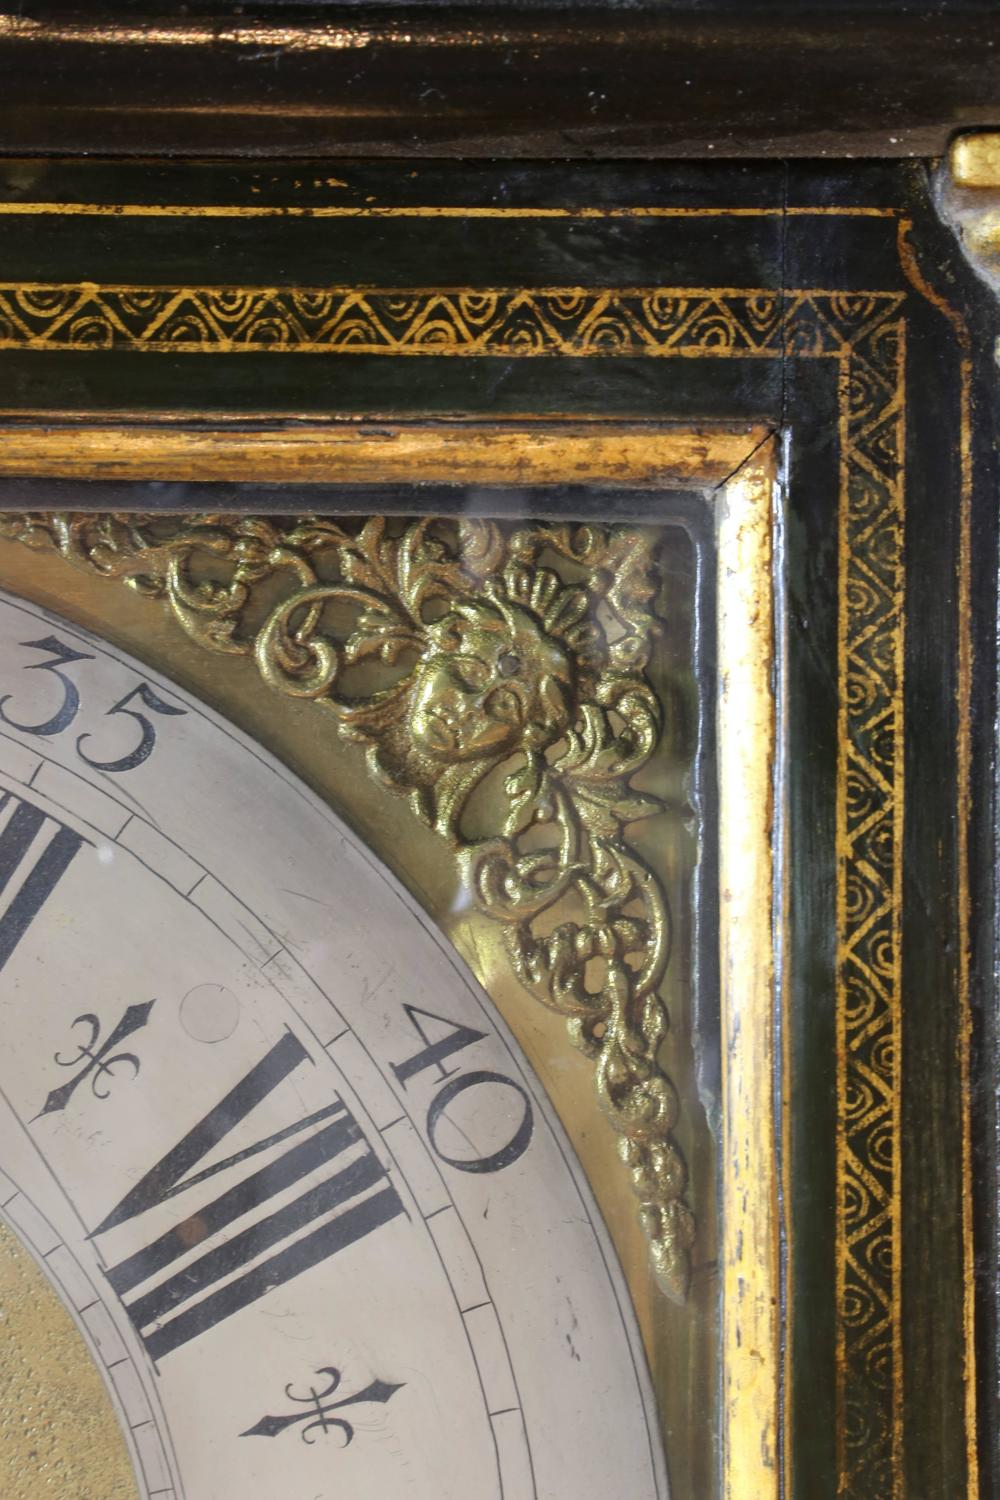 George Iii Chinoiserie Japanned Longcase Clock George Iii Green-japanned Chinoisserie Tall Case Clock For